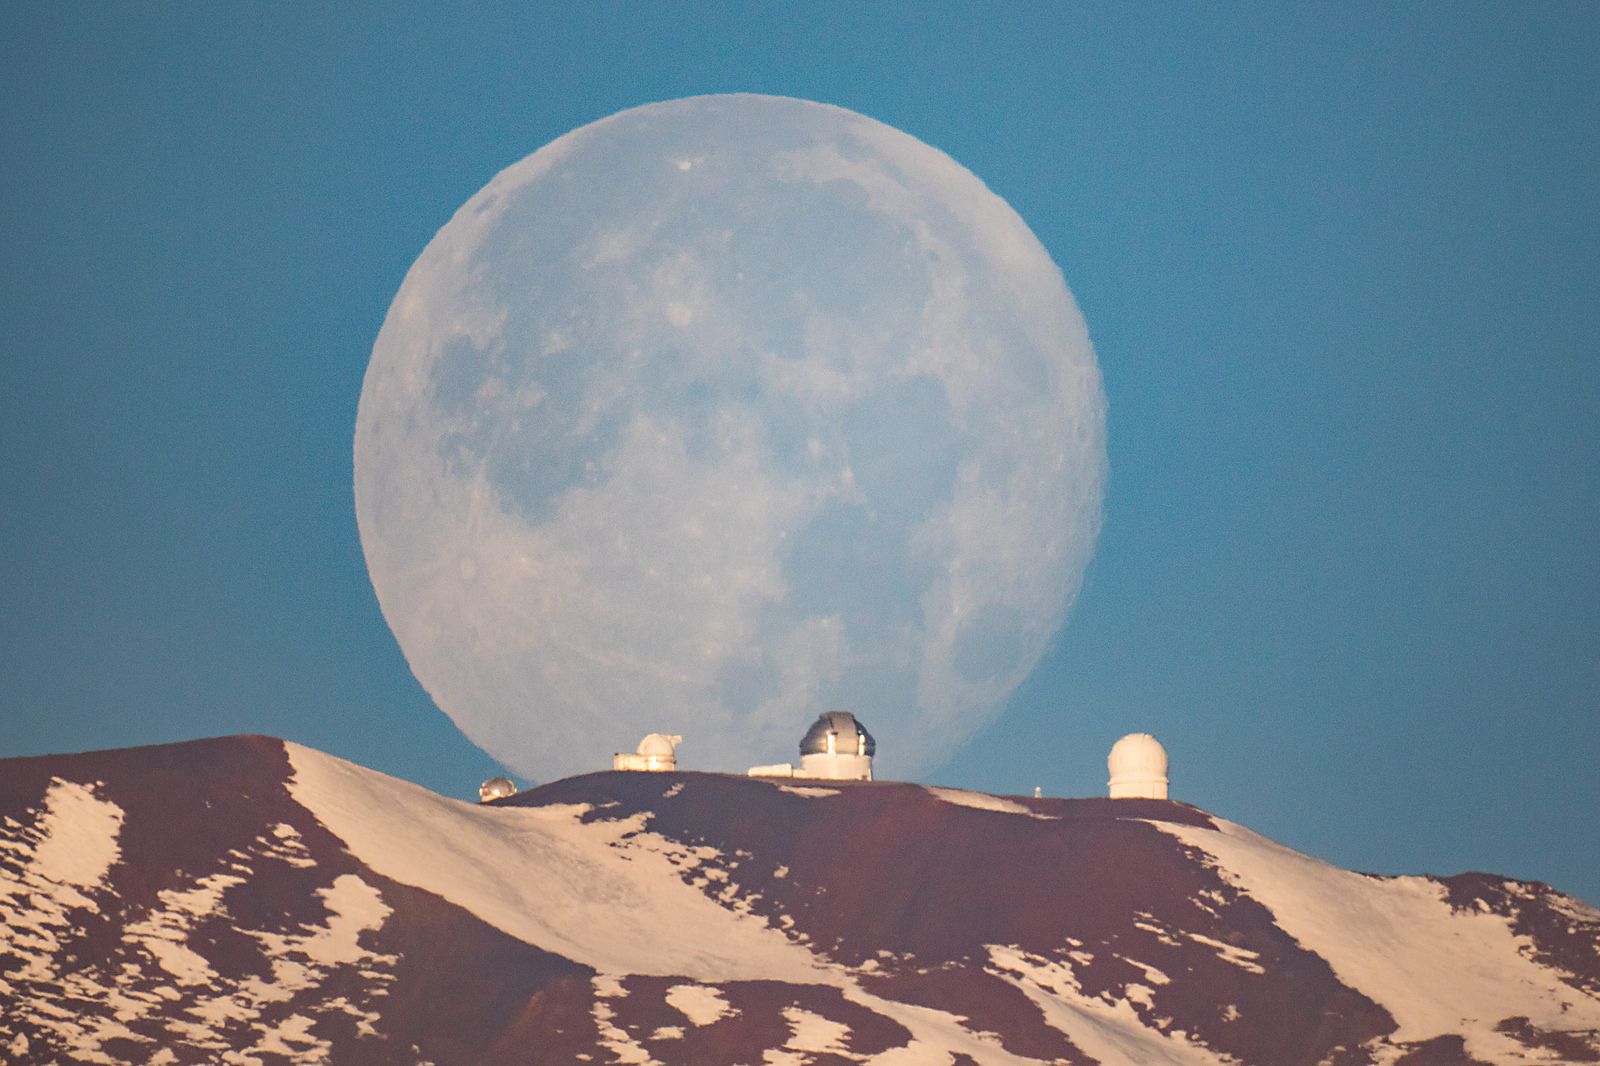 Moonset over Mauna Kea, Hawaii